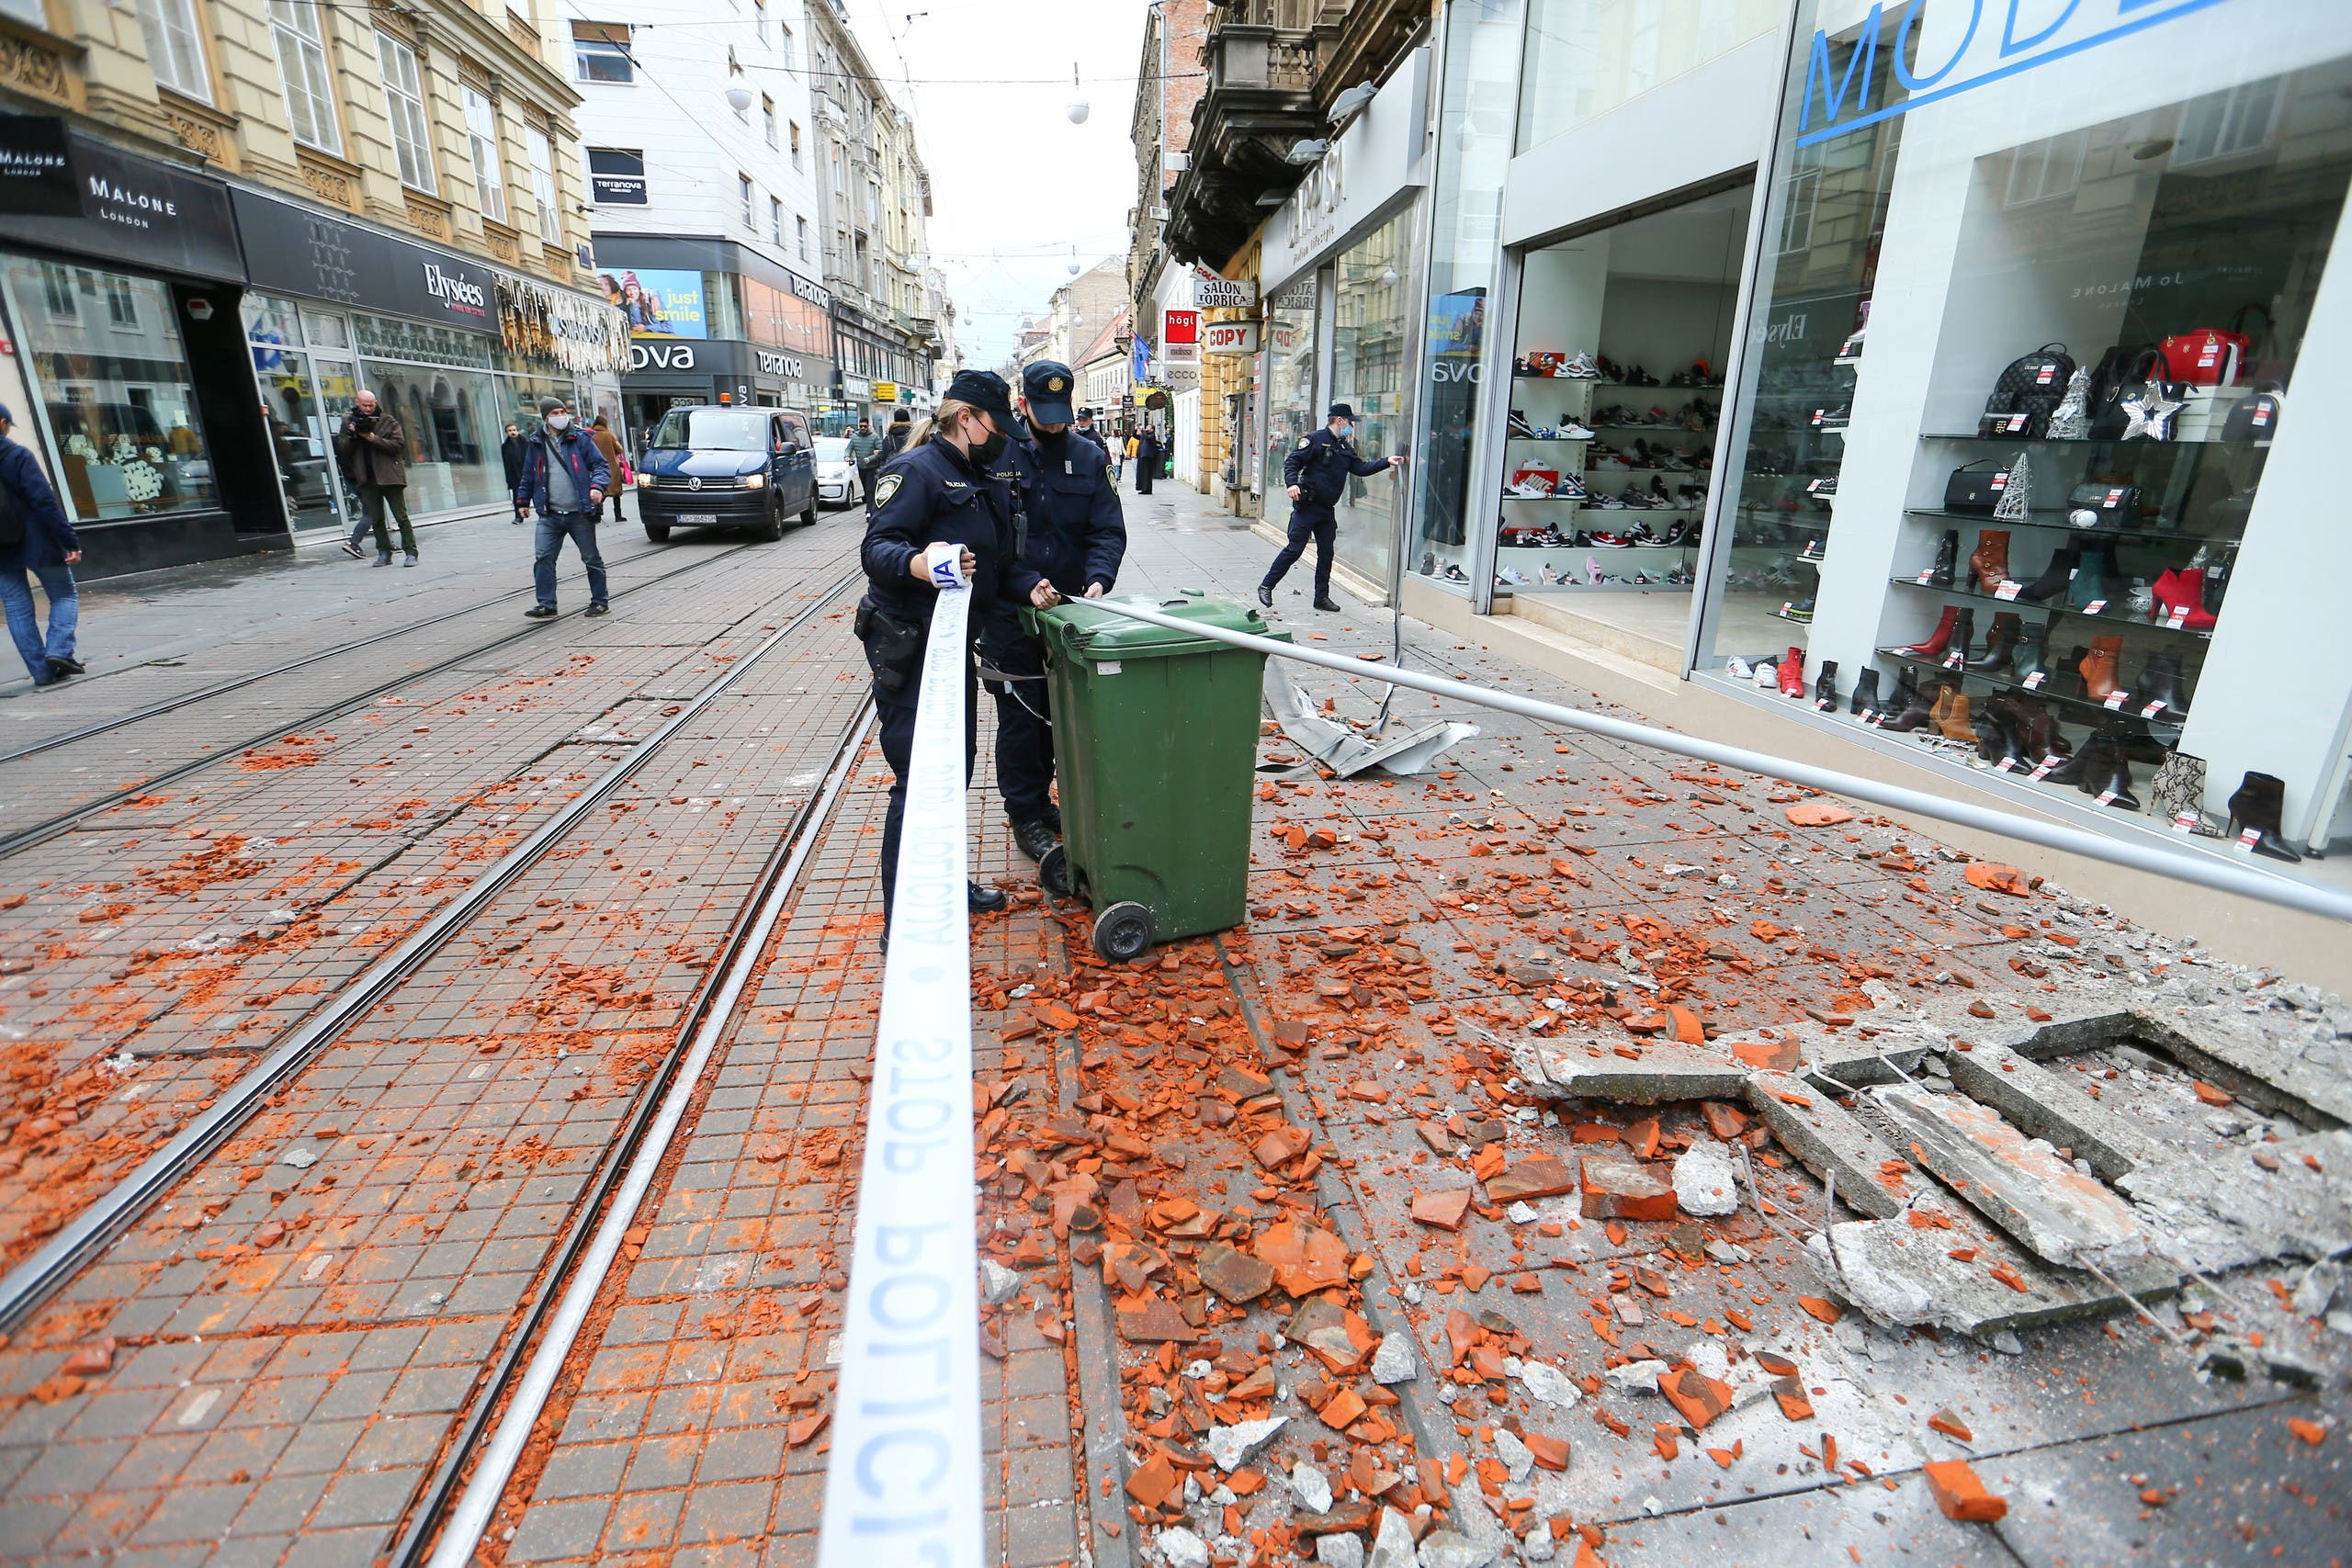 Police officers secure the area after an earthquake, in Zagreb, Croatia December 29, 2020. REUTERS/Antonio Bronic